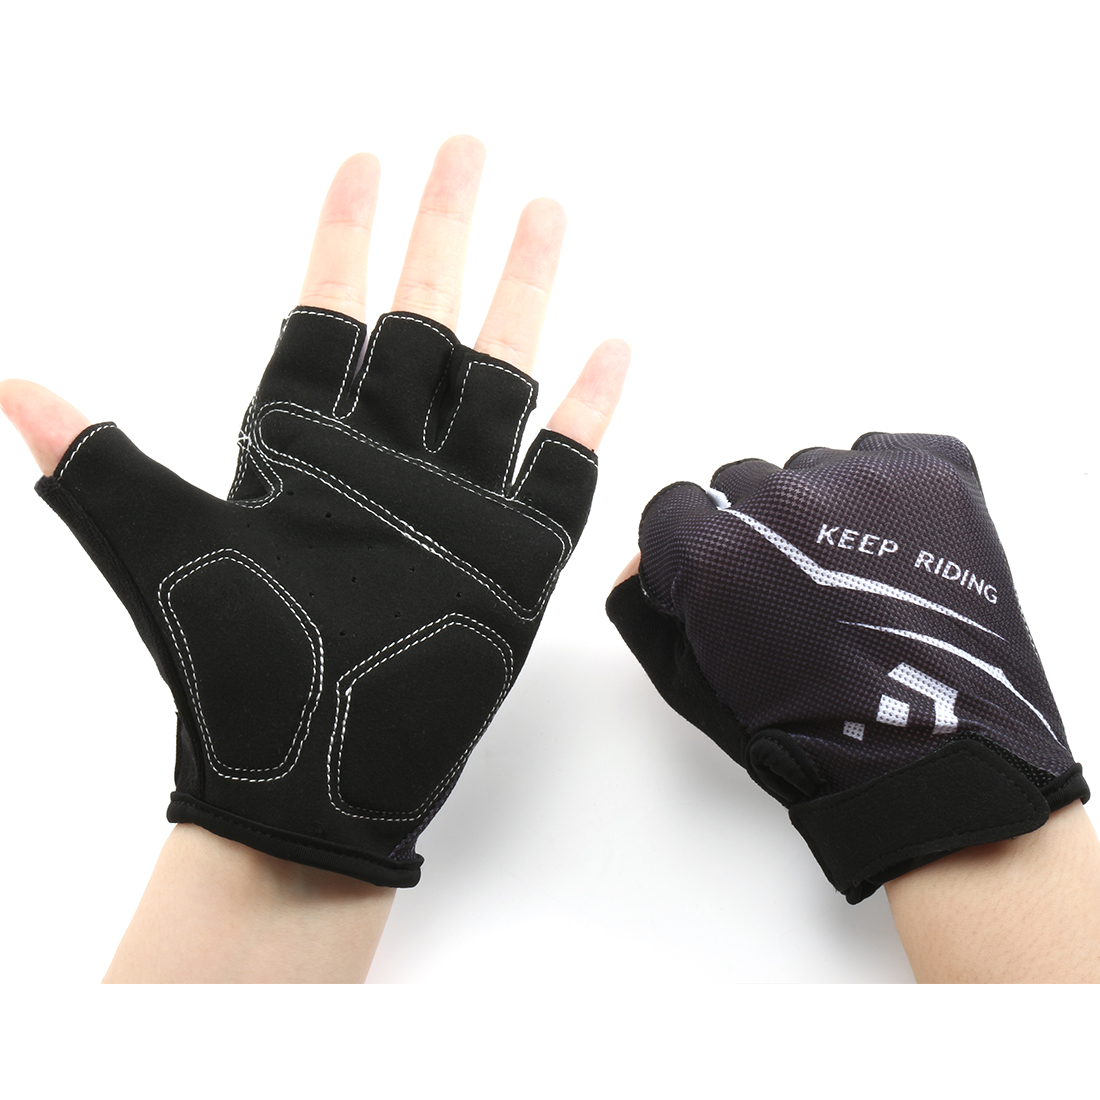 Outdoor Elasticized Fabric Sports Exercise Half Finger Cycling Gloves Palm Support Pair (White M)